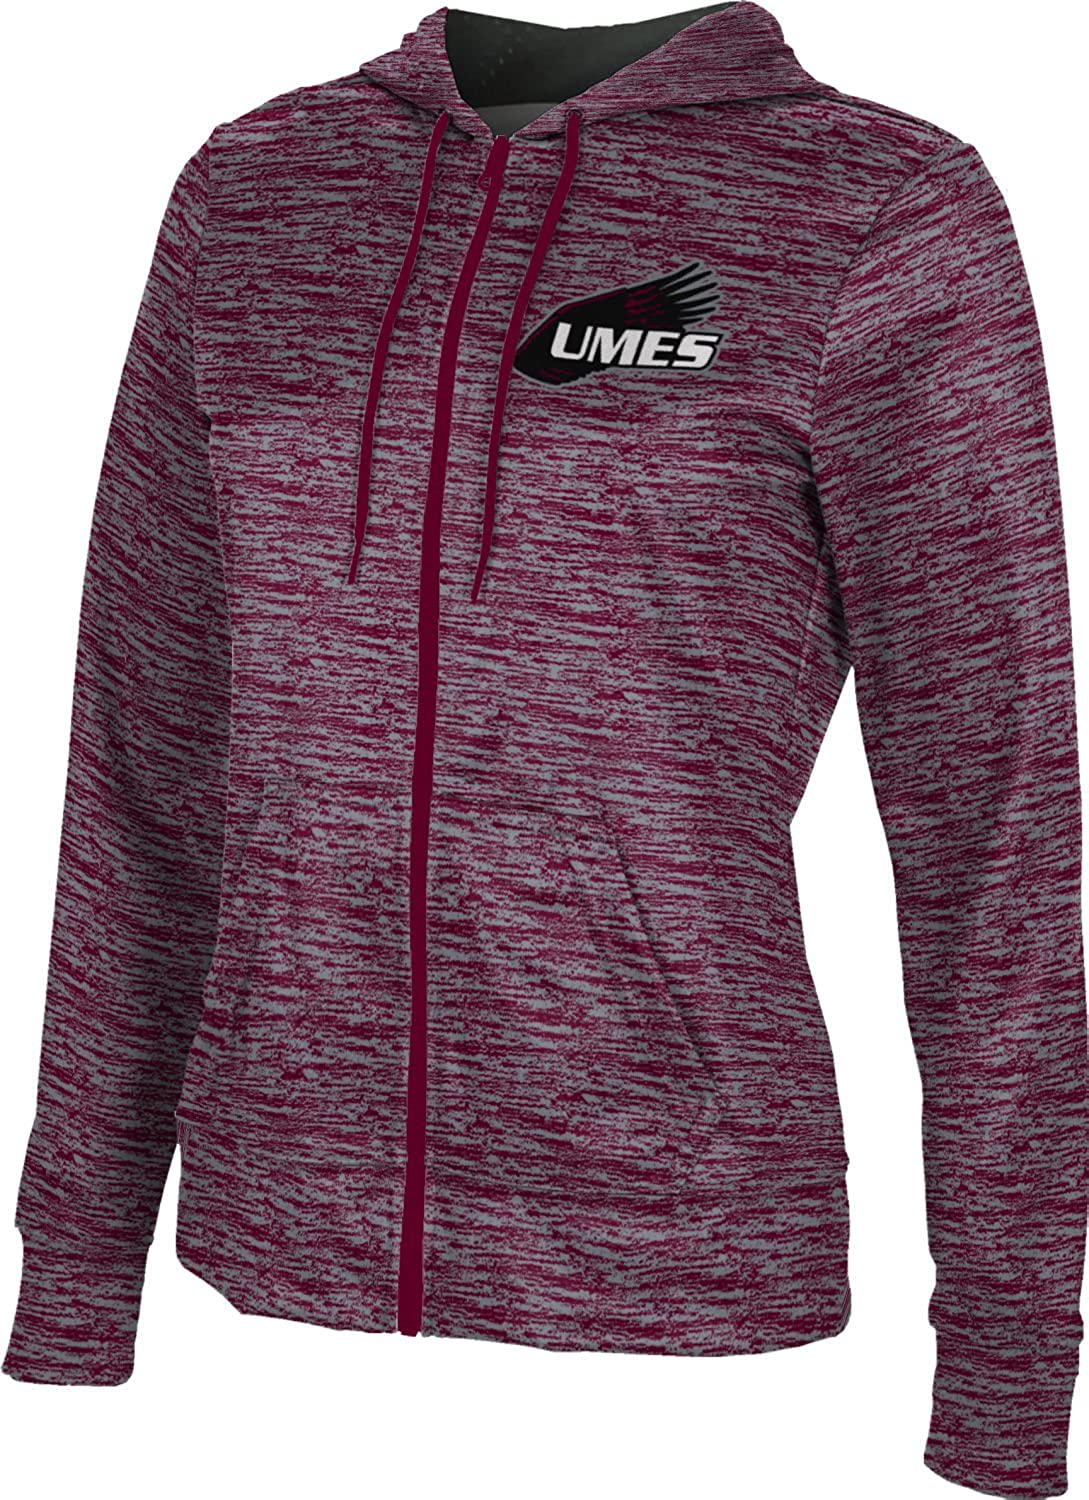 ProSphere Women's University of Maryland Eastern Shore Brushed Fullzip Hoodie